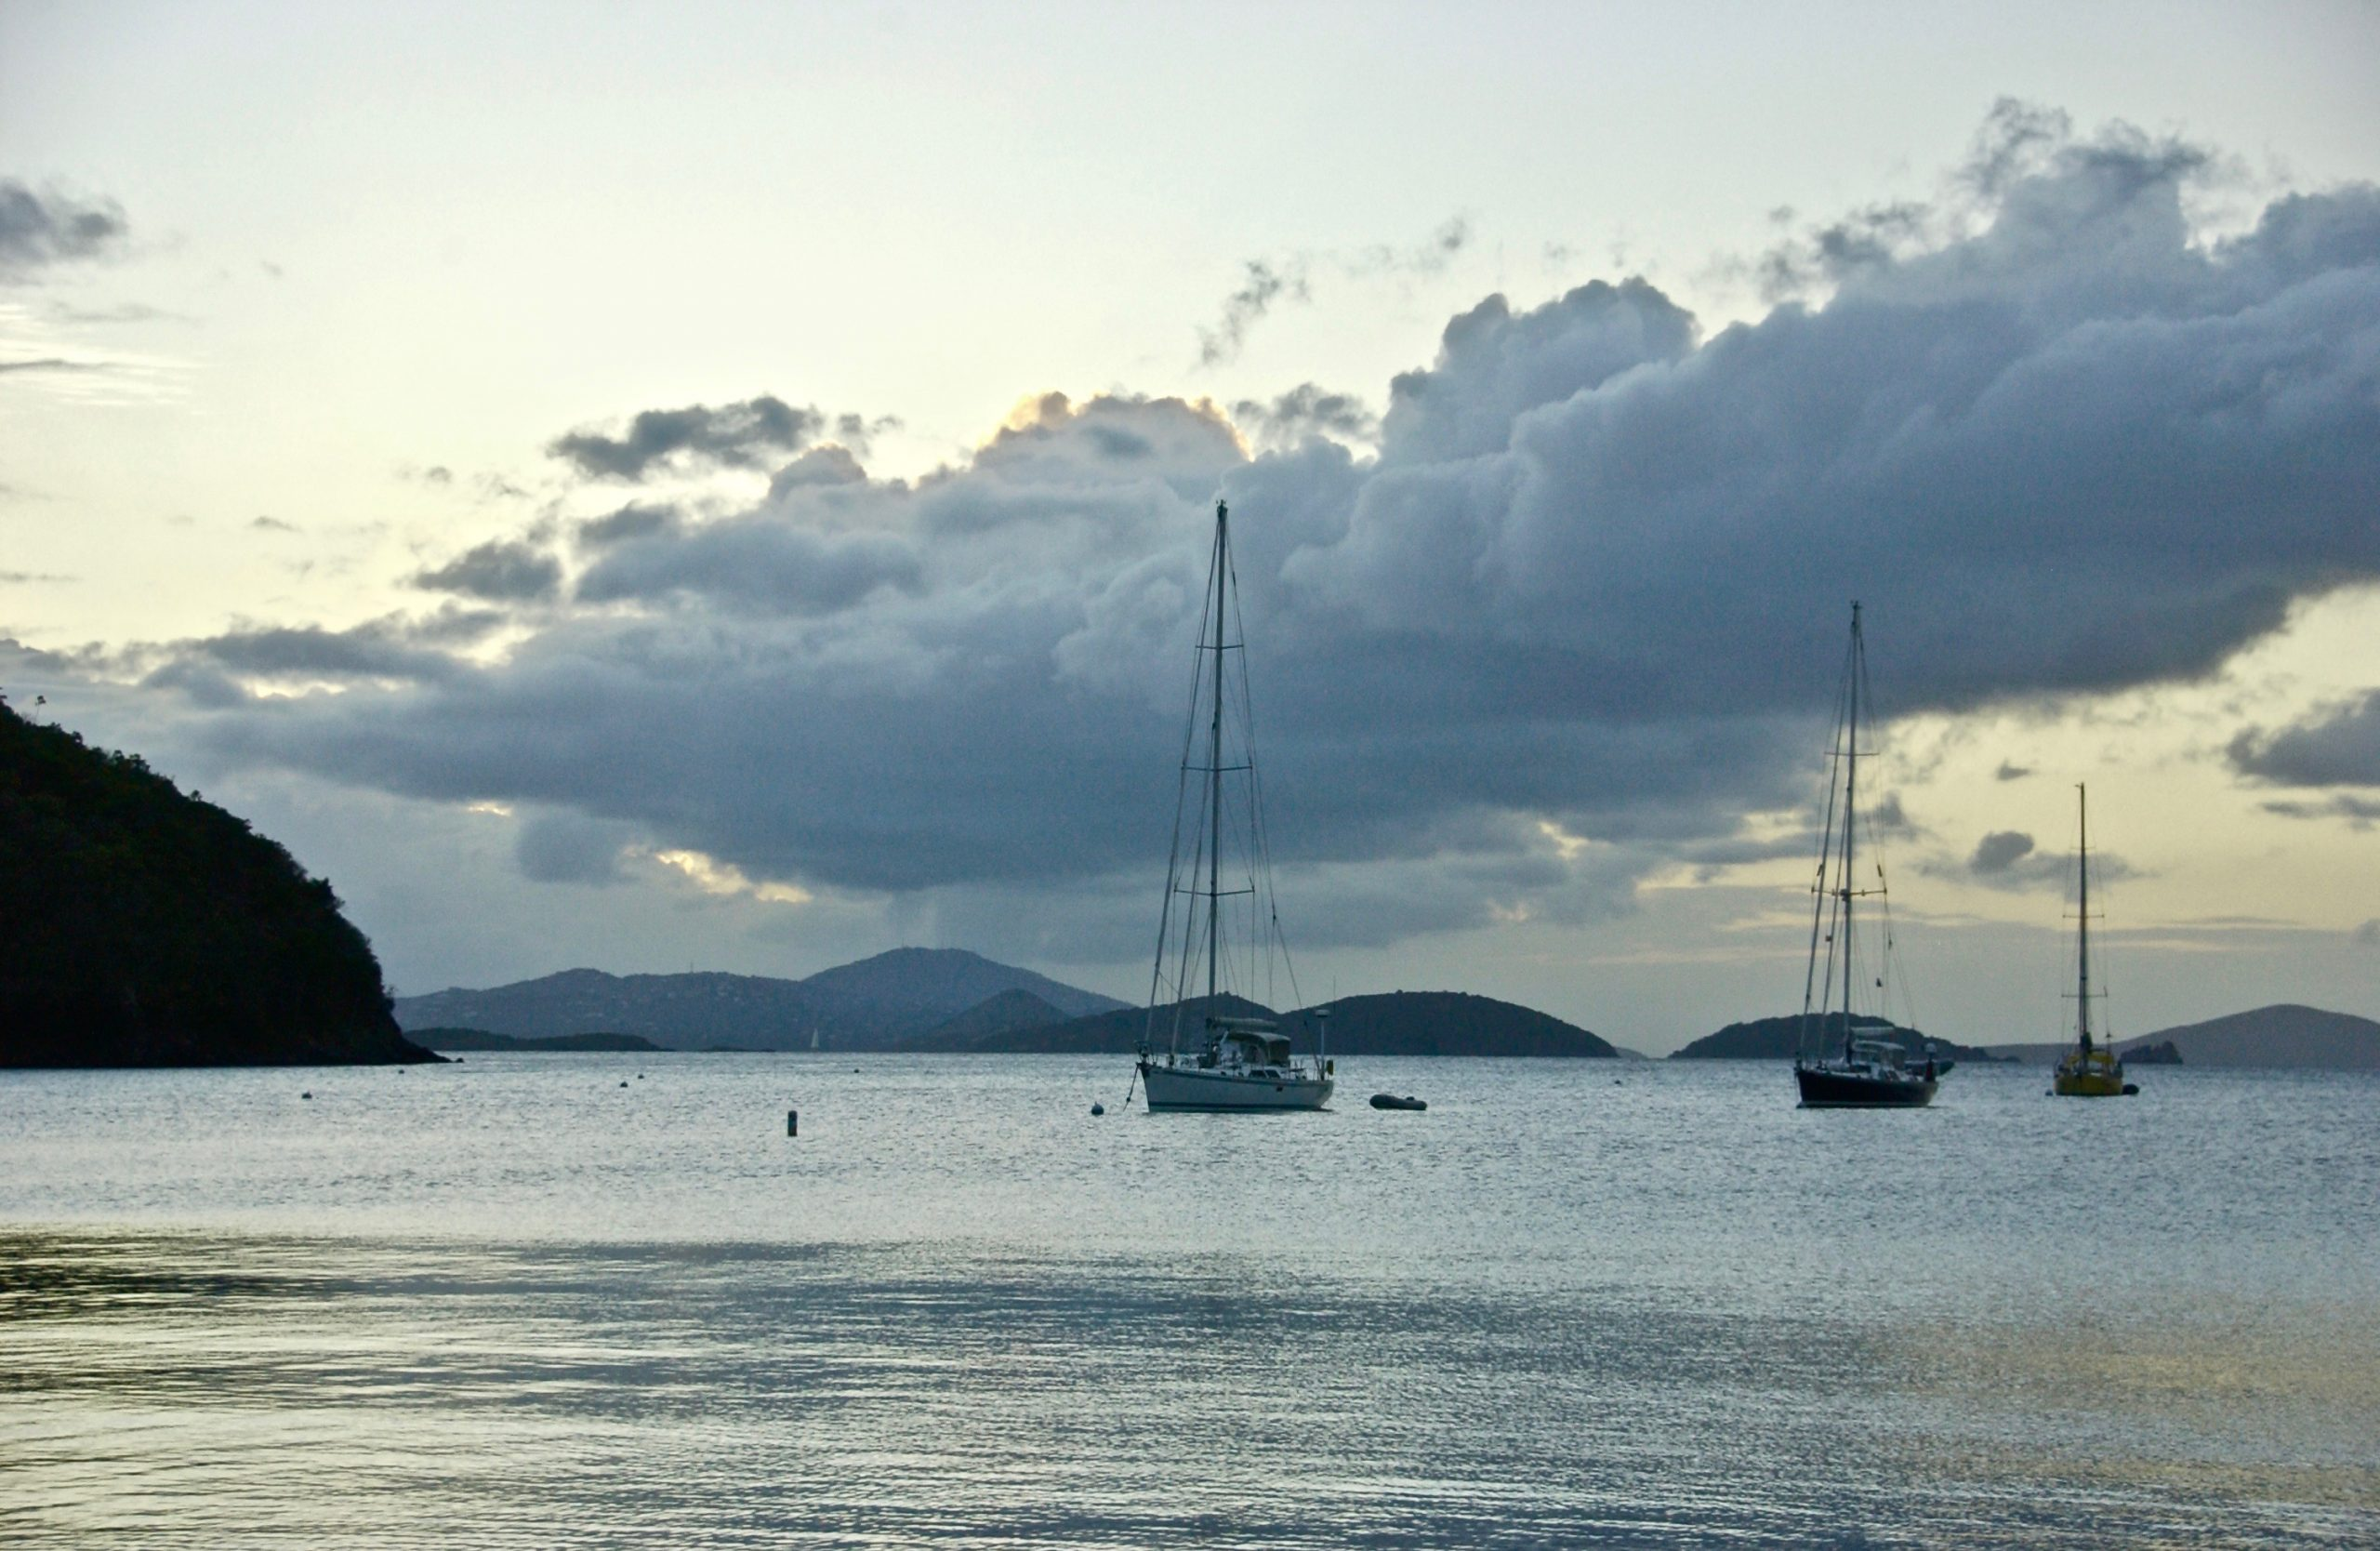 Calm:  Late-Day Anchorage; Francis Bay, St. John, U.S. Virgin Islands